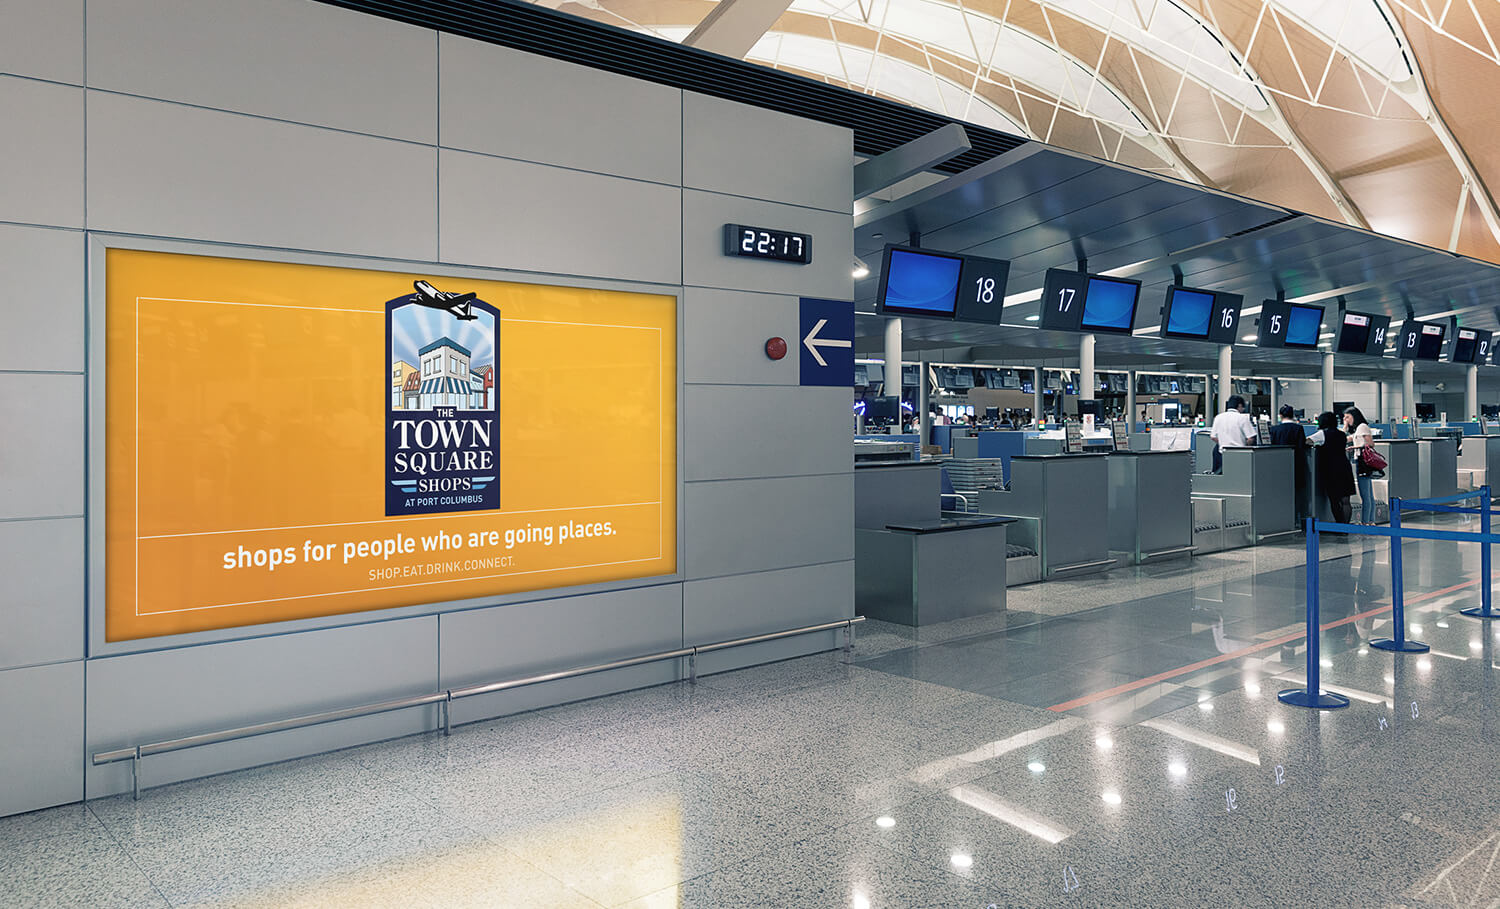 Airport Digital Signage content creation and motion graphics